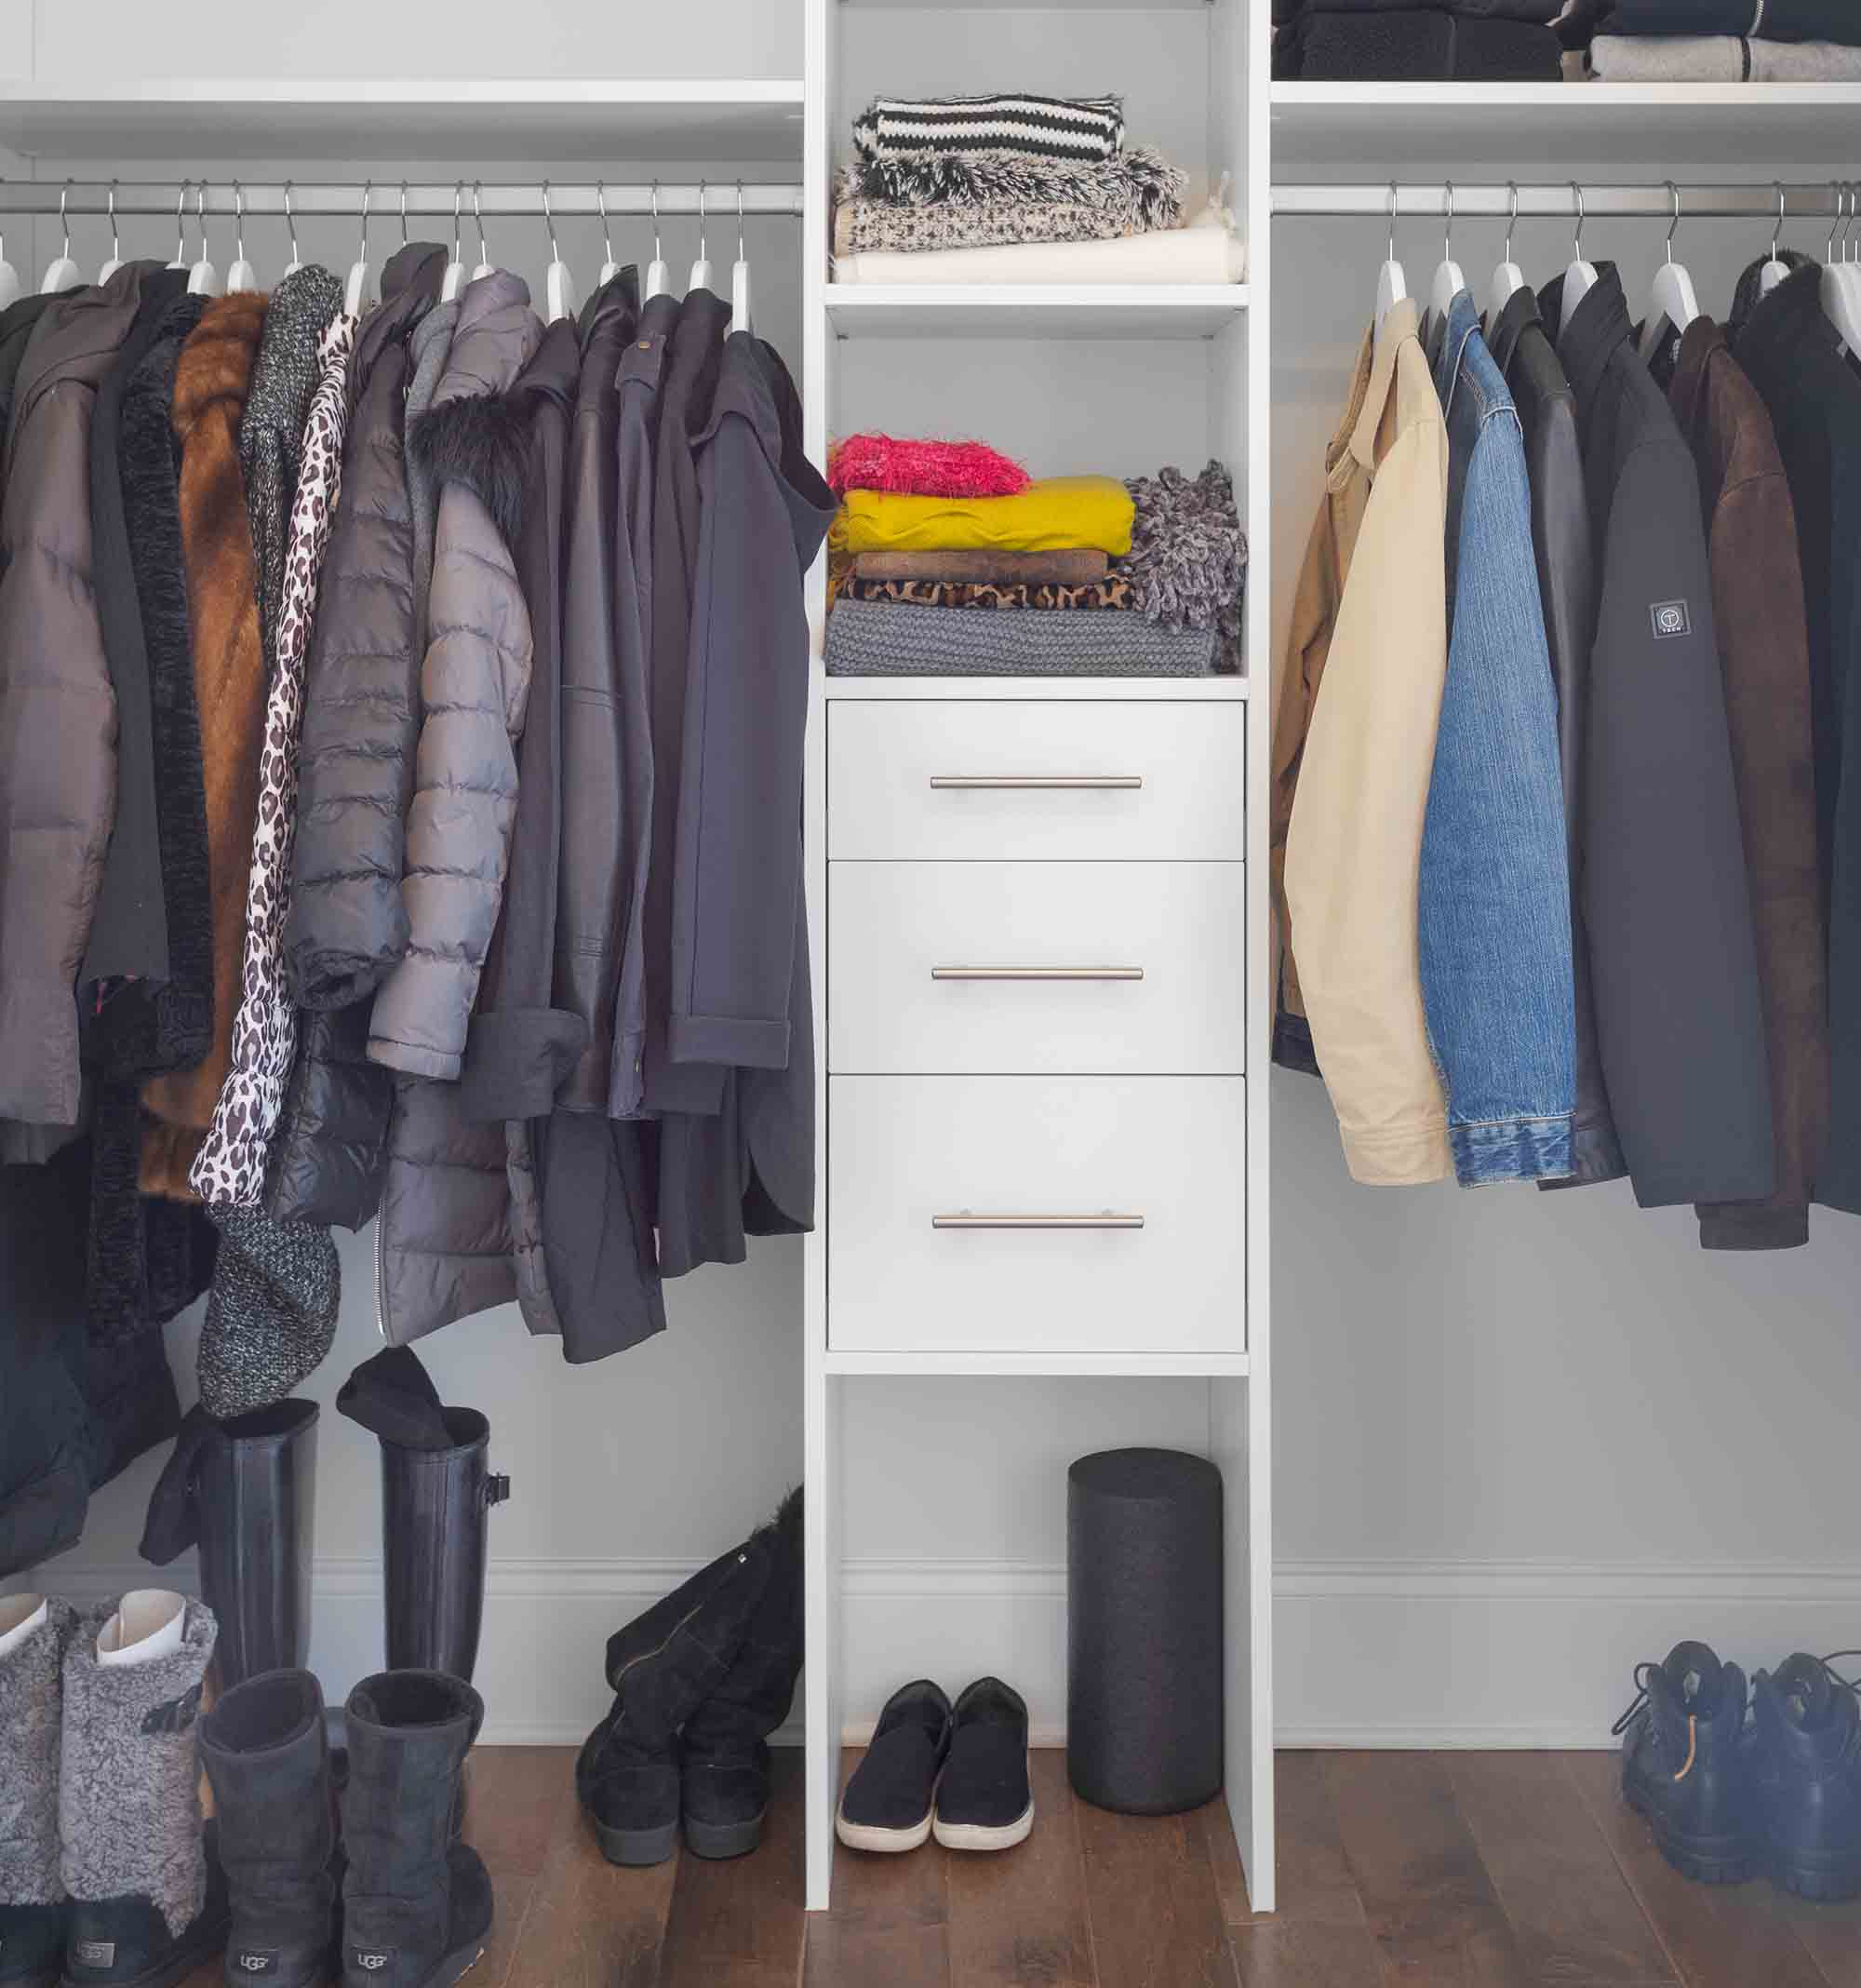 Can Re-organizing My Closets Help Sell My Home?